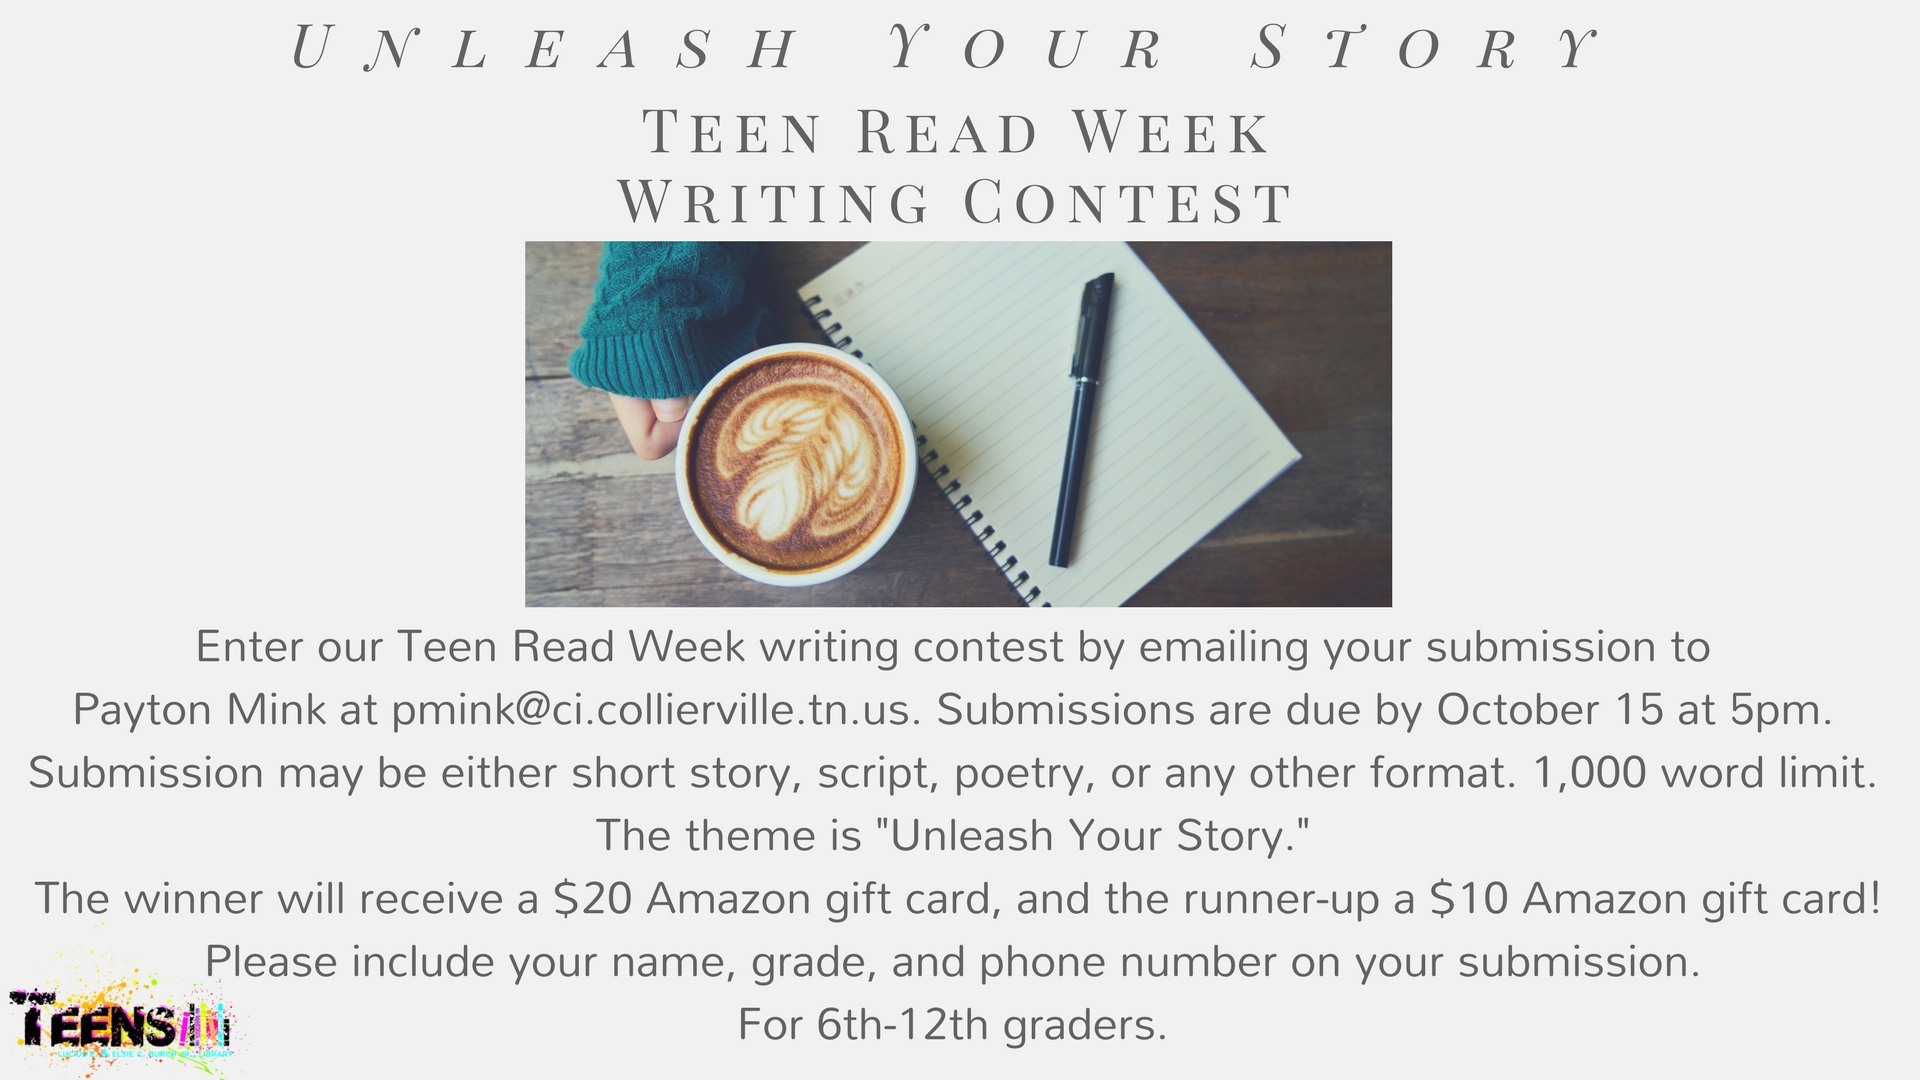 Teen Read Week Writing Contest